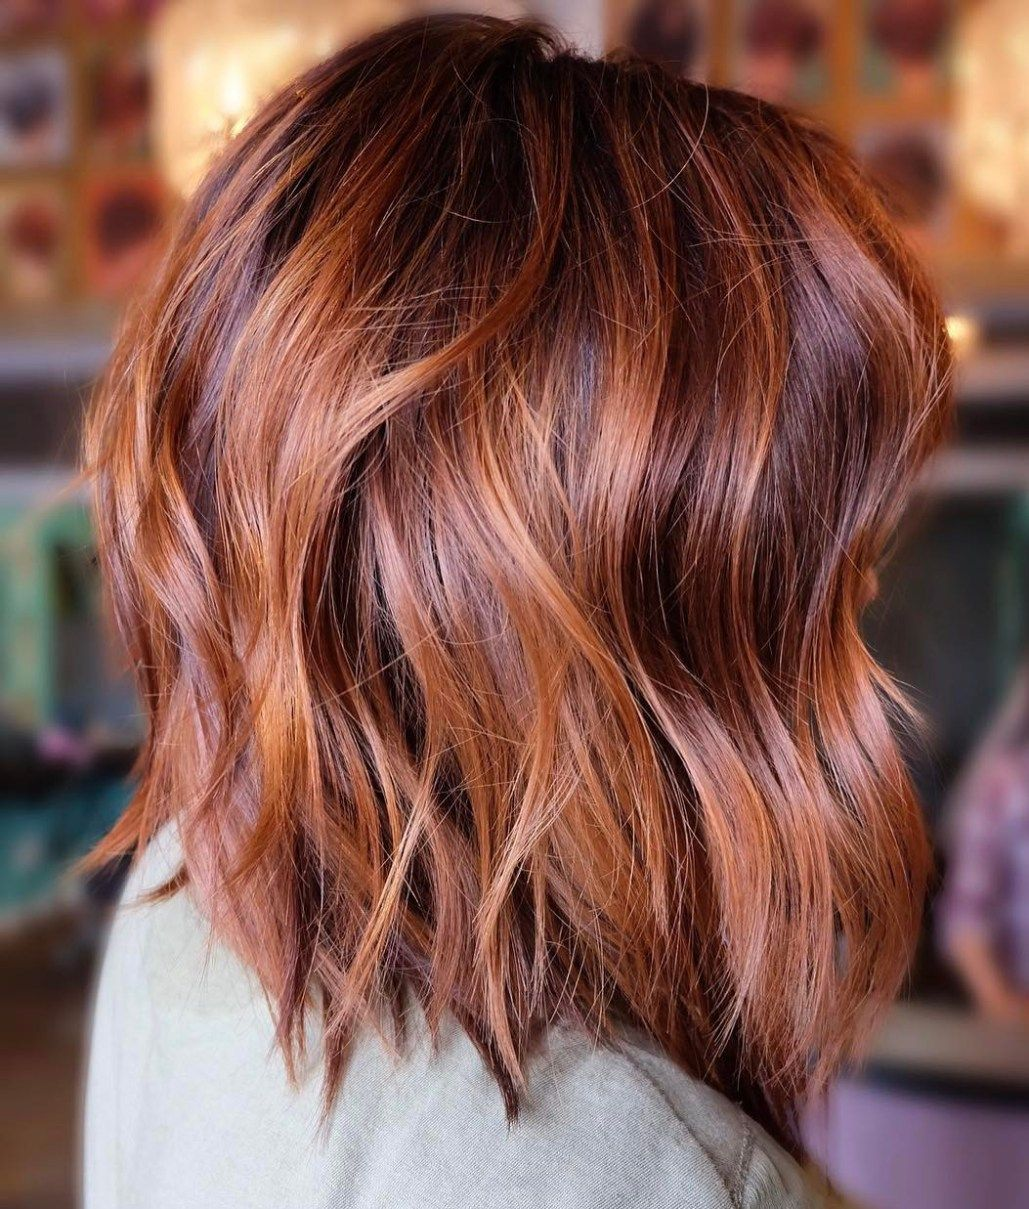 Inspiring Long Bob Hairstyles and Haircuts Hair Pinterest